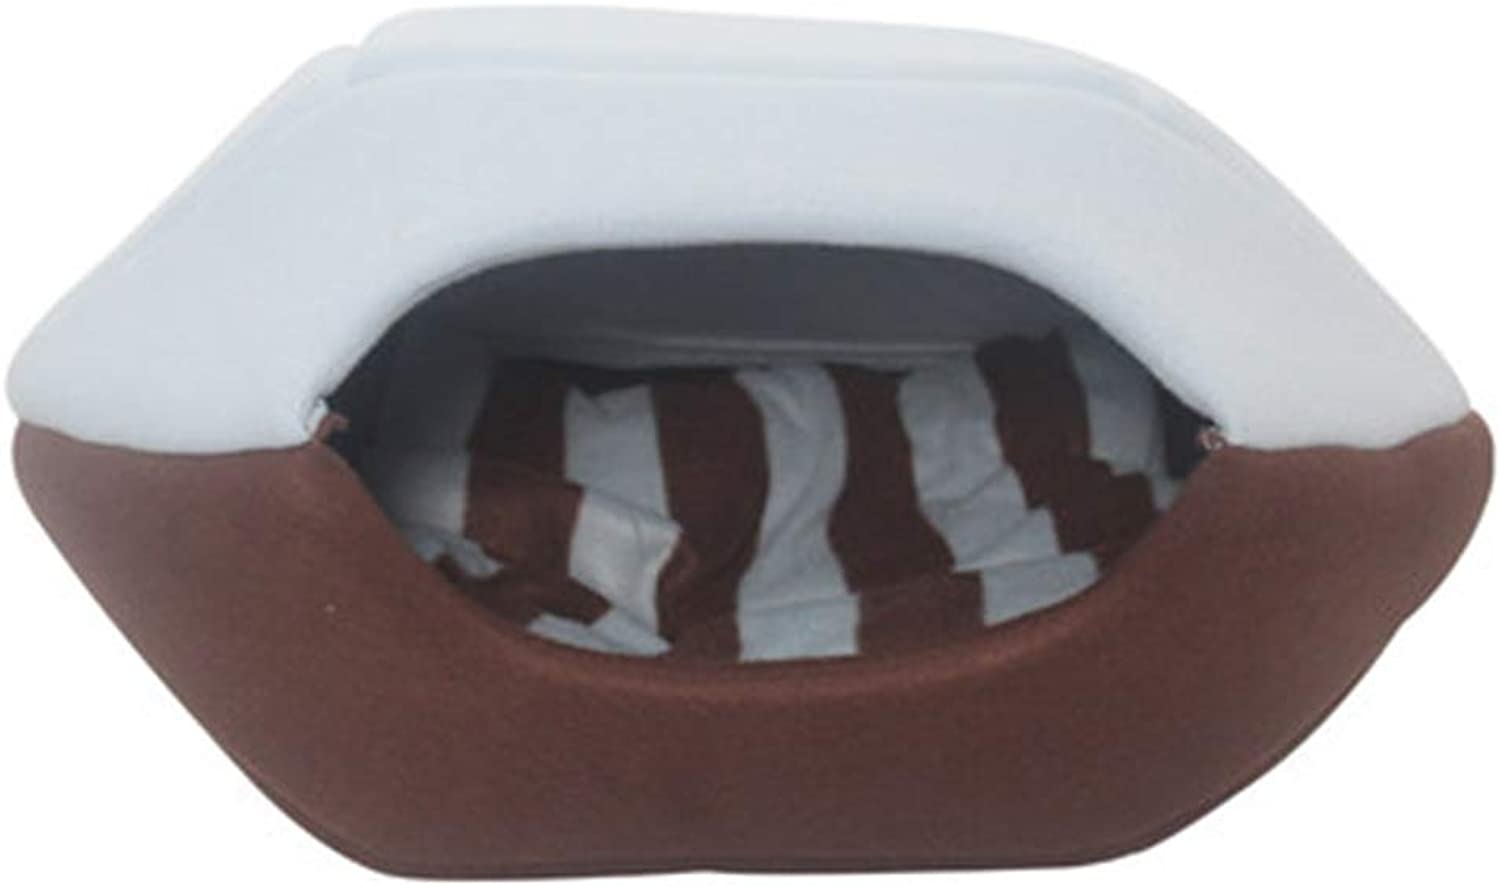 Dogs Beds Furniture Bed Blankets Dog House, Yurt, Cat House, Cat's Nest, Four Seasons, Closed, Warm, Cat Sleeping Bag, Pet Nest, Cat Bed, Pet Supplies (color   Brown, Size   L)